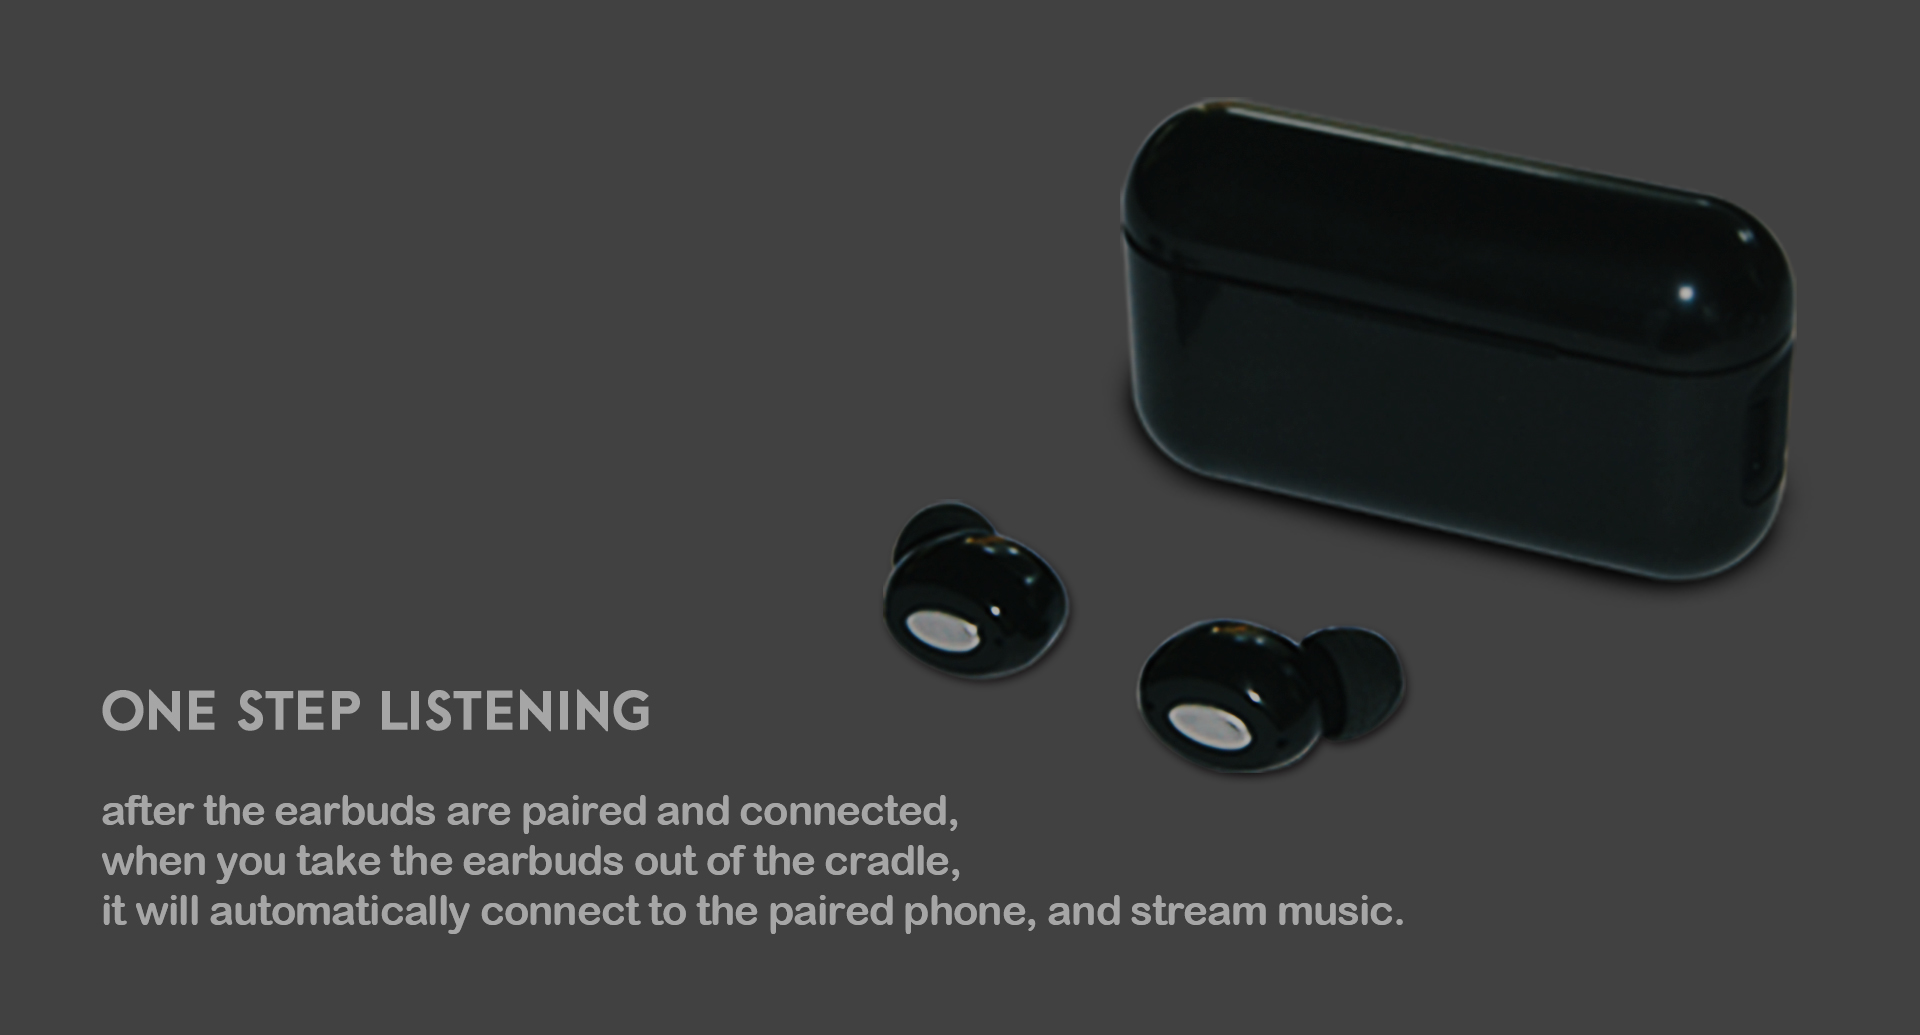 truly wireless earbuds Built-in Mic for iPhone and Android Smart Phones